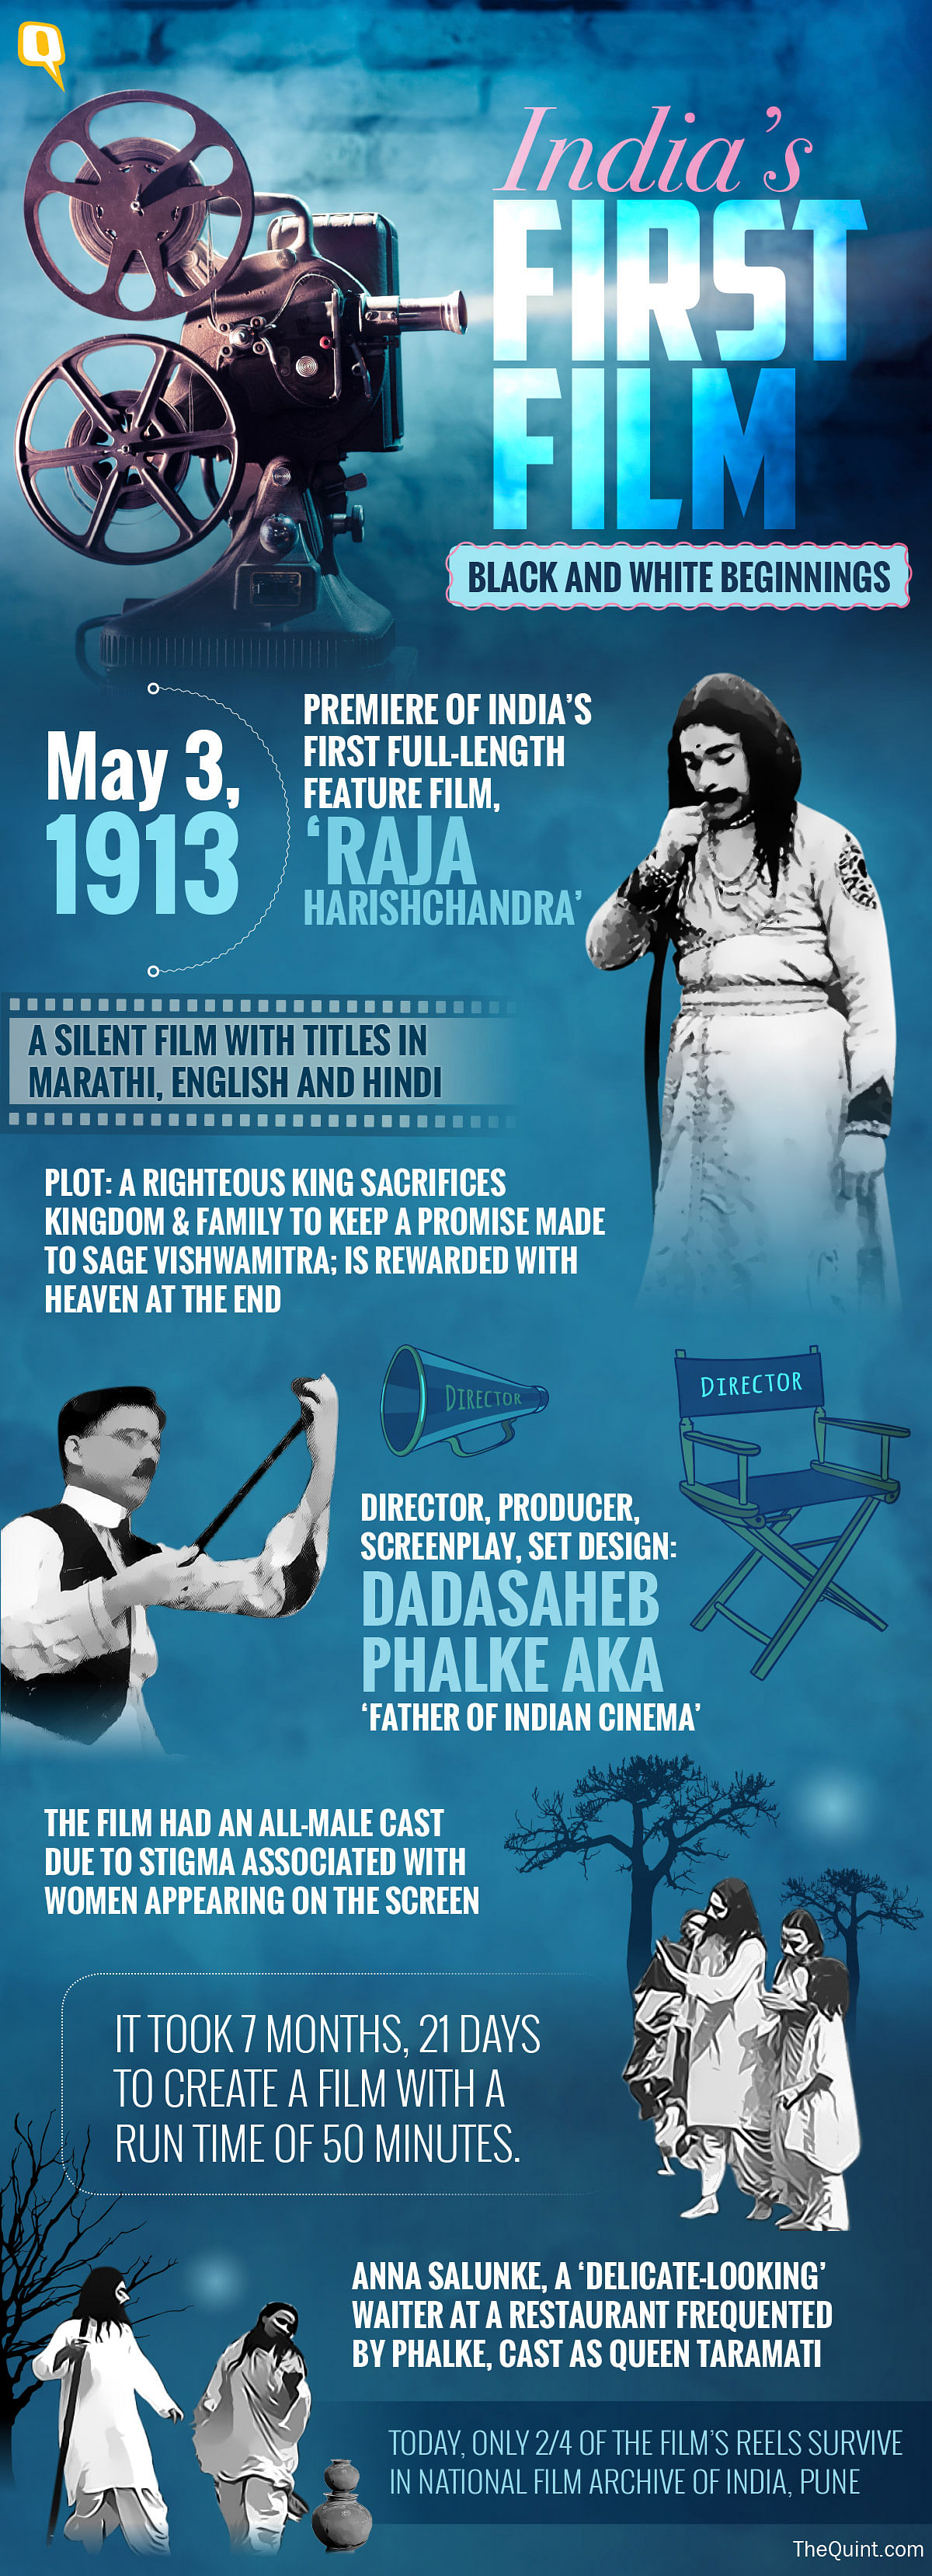 Infographic: Dadasaheb Phalke, the Man Who Reinvented Storytelling